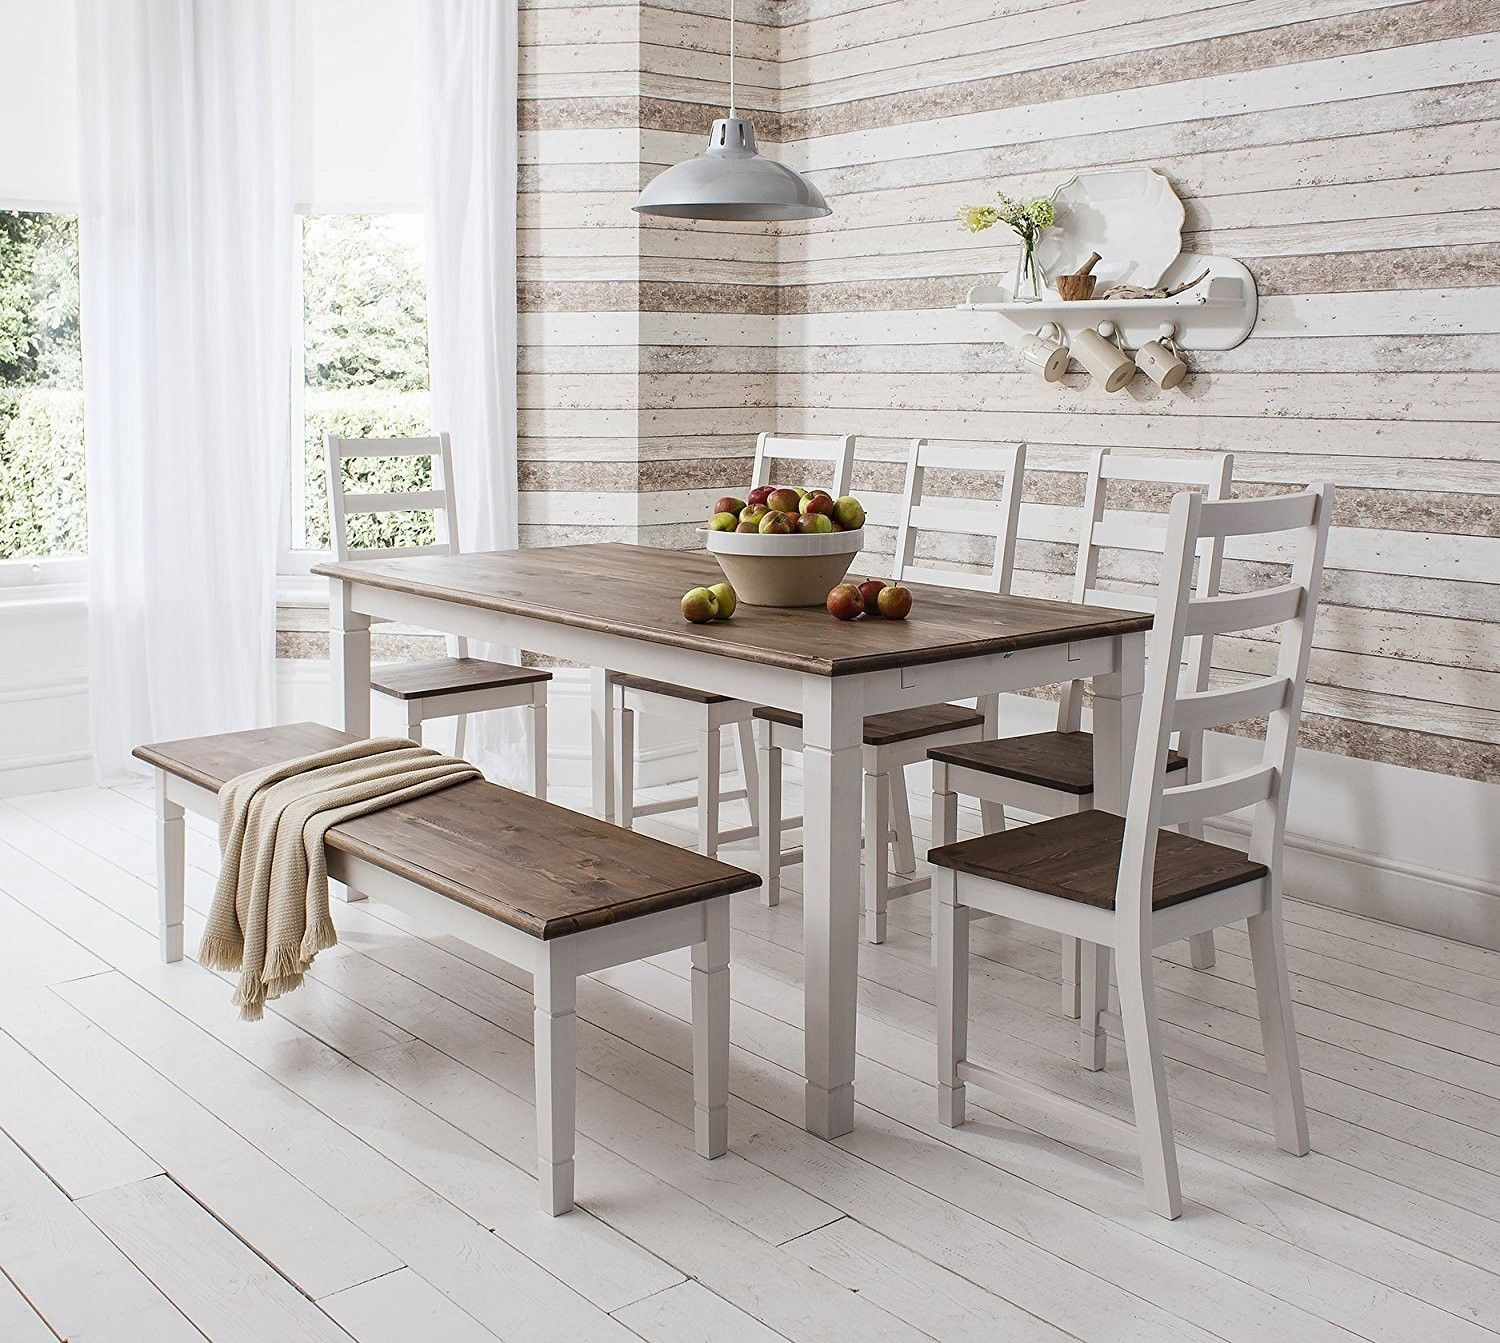 Dining Table and Chairs Canterbury White Dark Pine With Bench - Visual Hunt